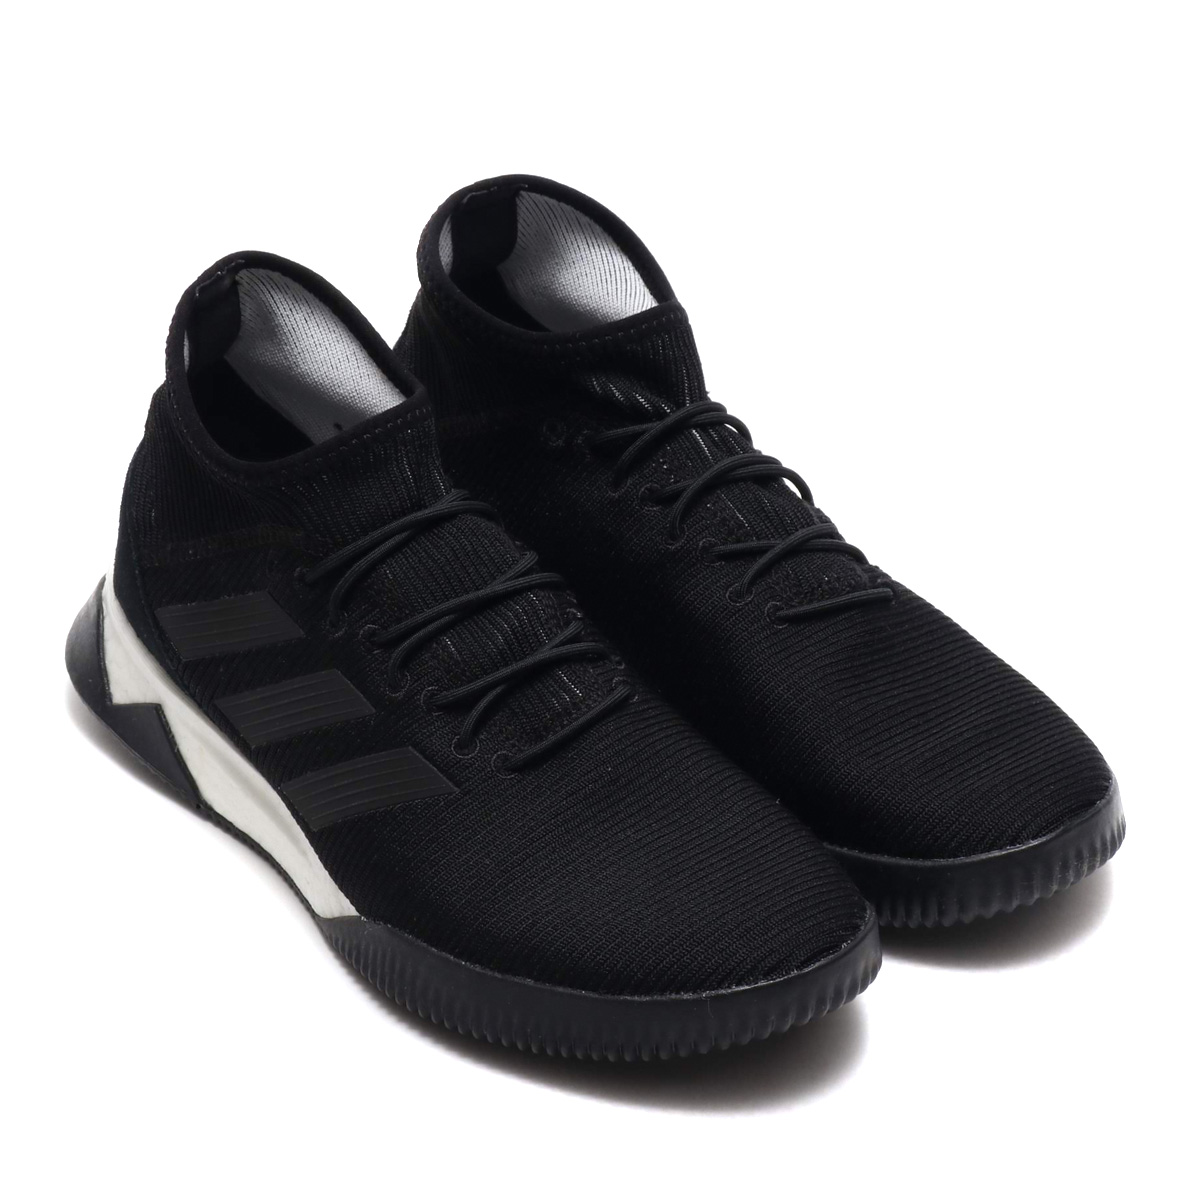 13adeea76b02 I rule over the pitch and dominate it as a conqueror of the street. The  soccer shoes which had support power and the comfort that wore the socks  which got a ...